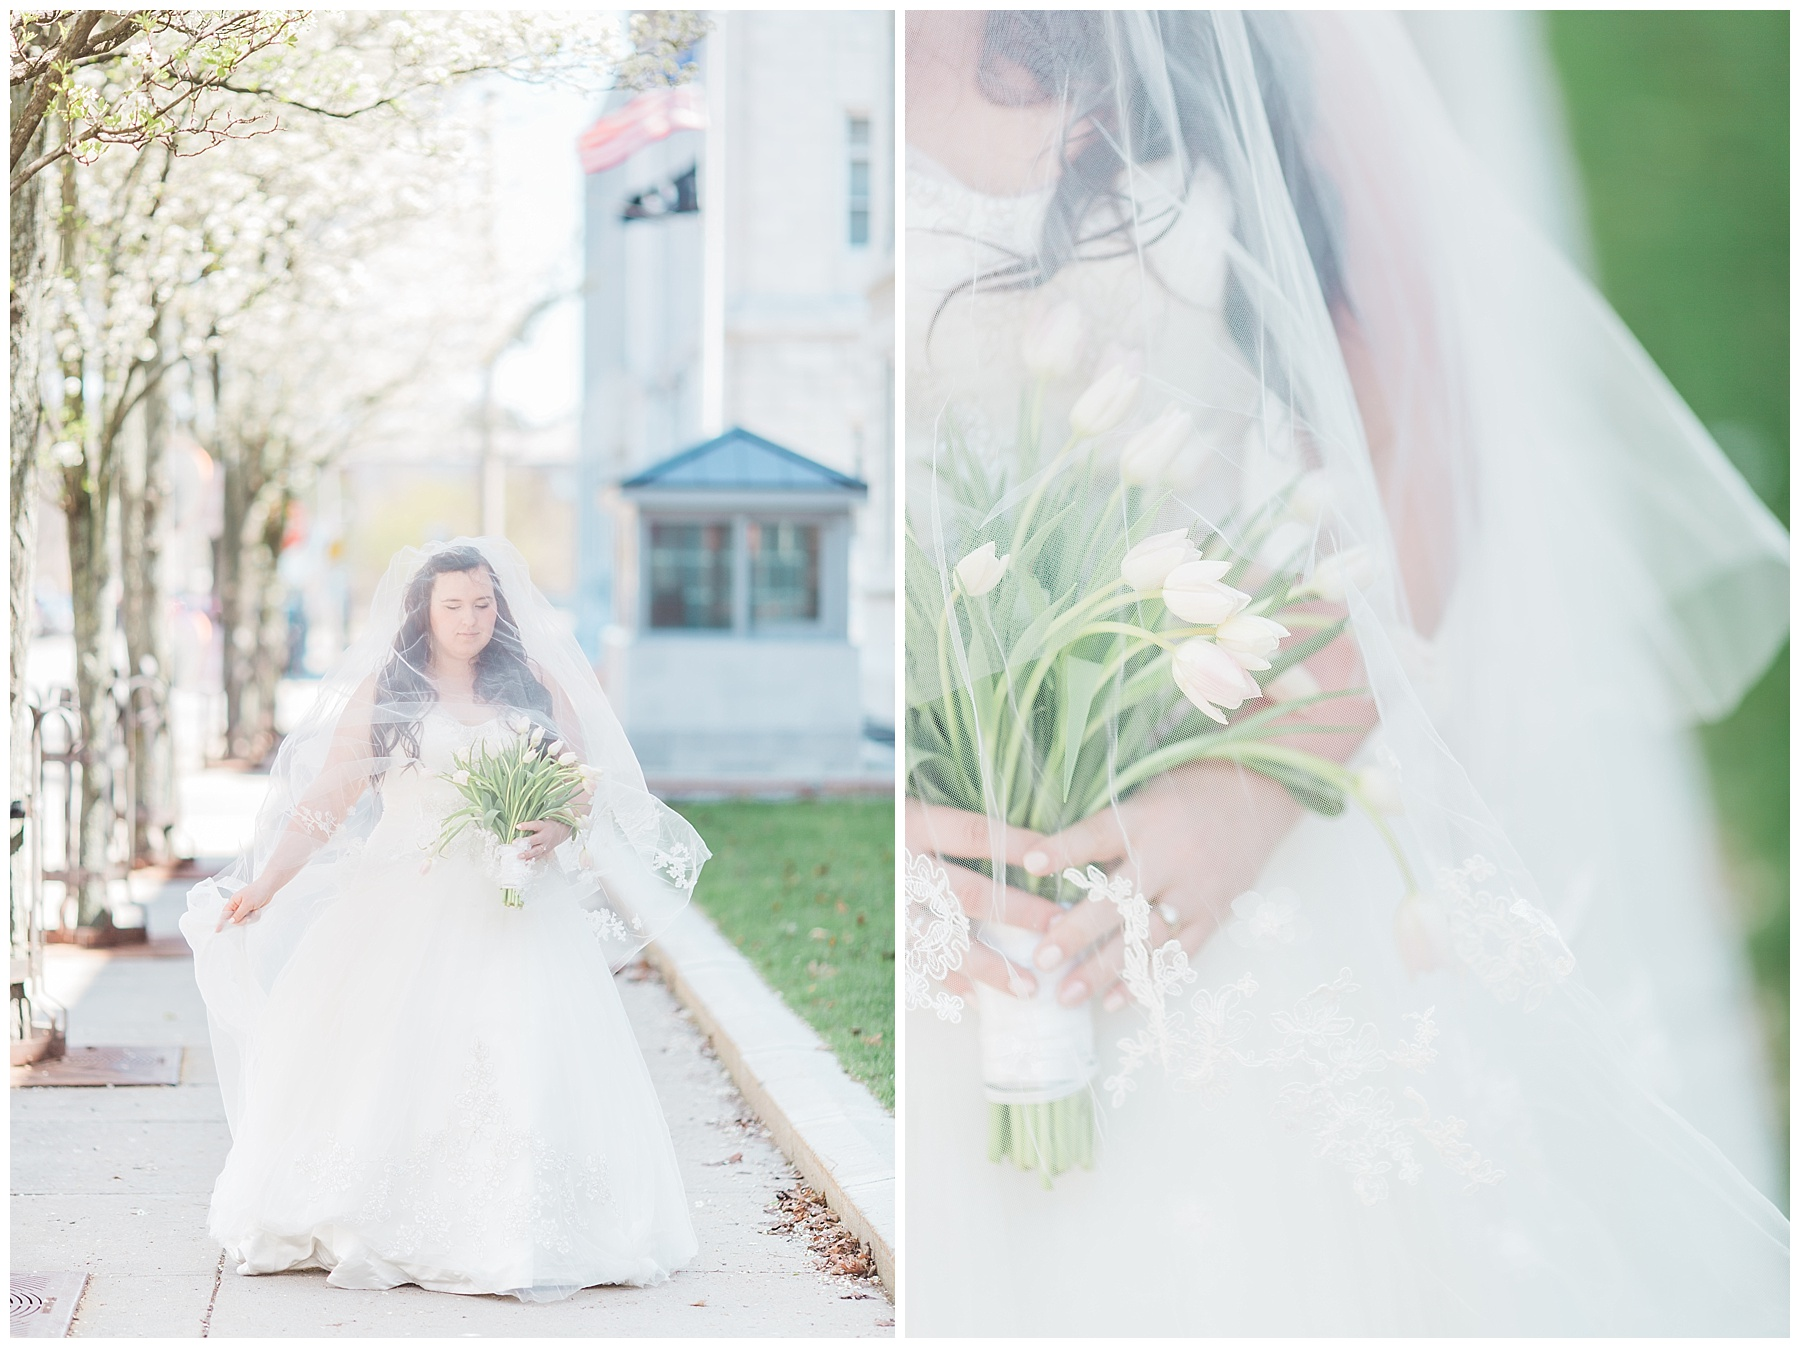 plus size couple in wedding attire taking wedding photos in downtown portland maine holding tulips